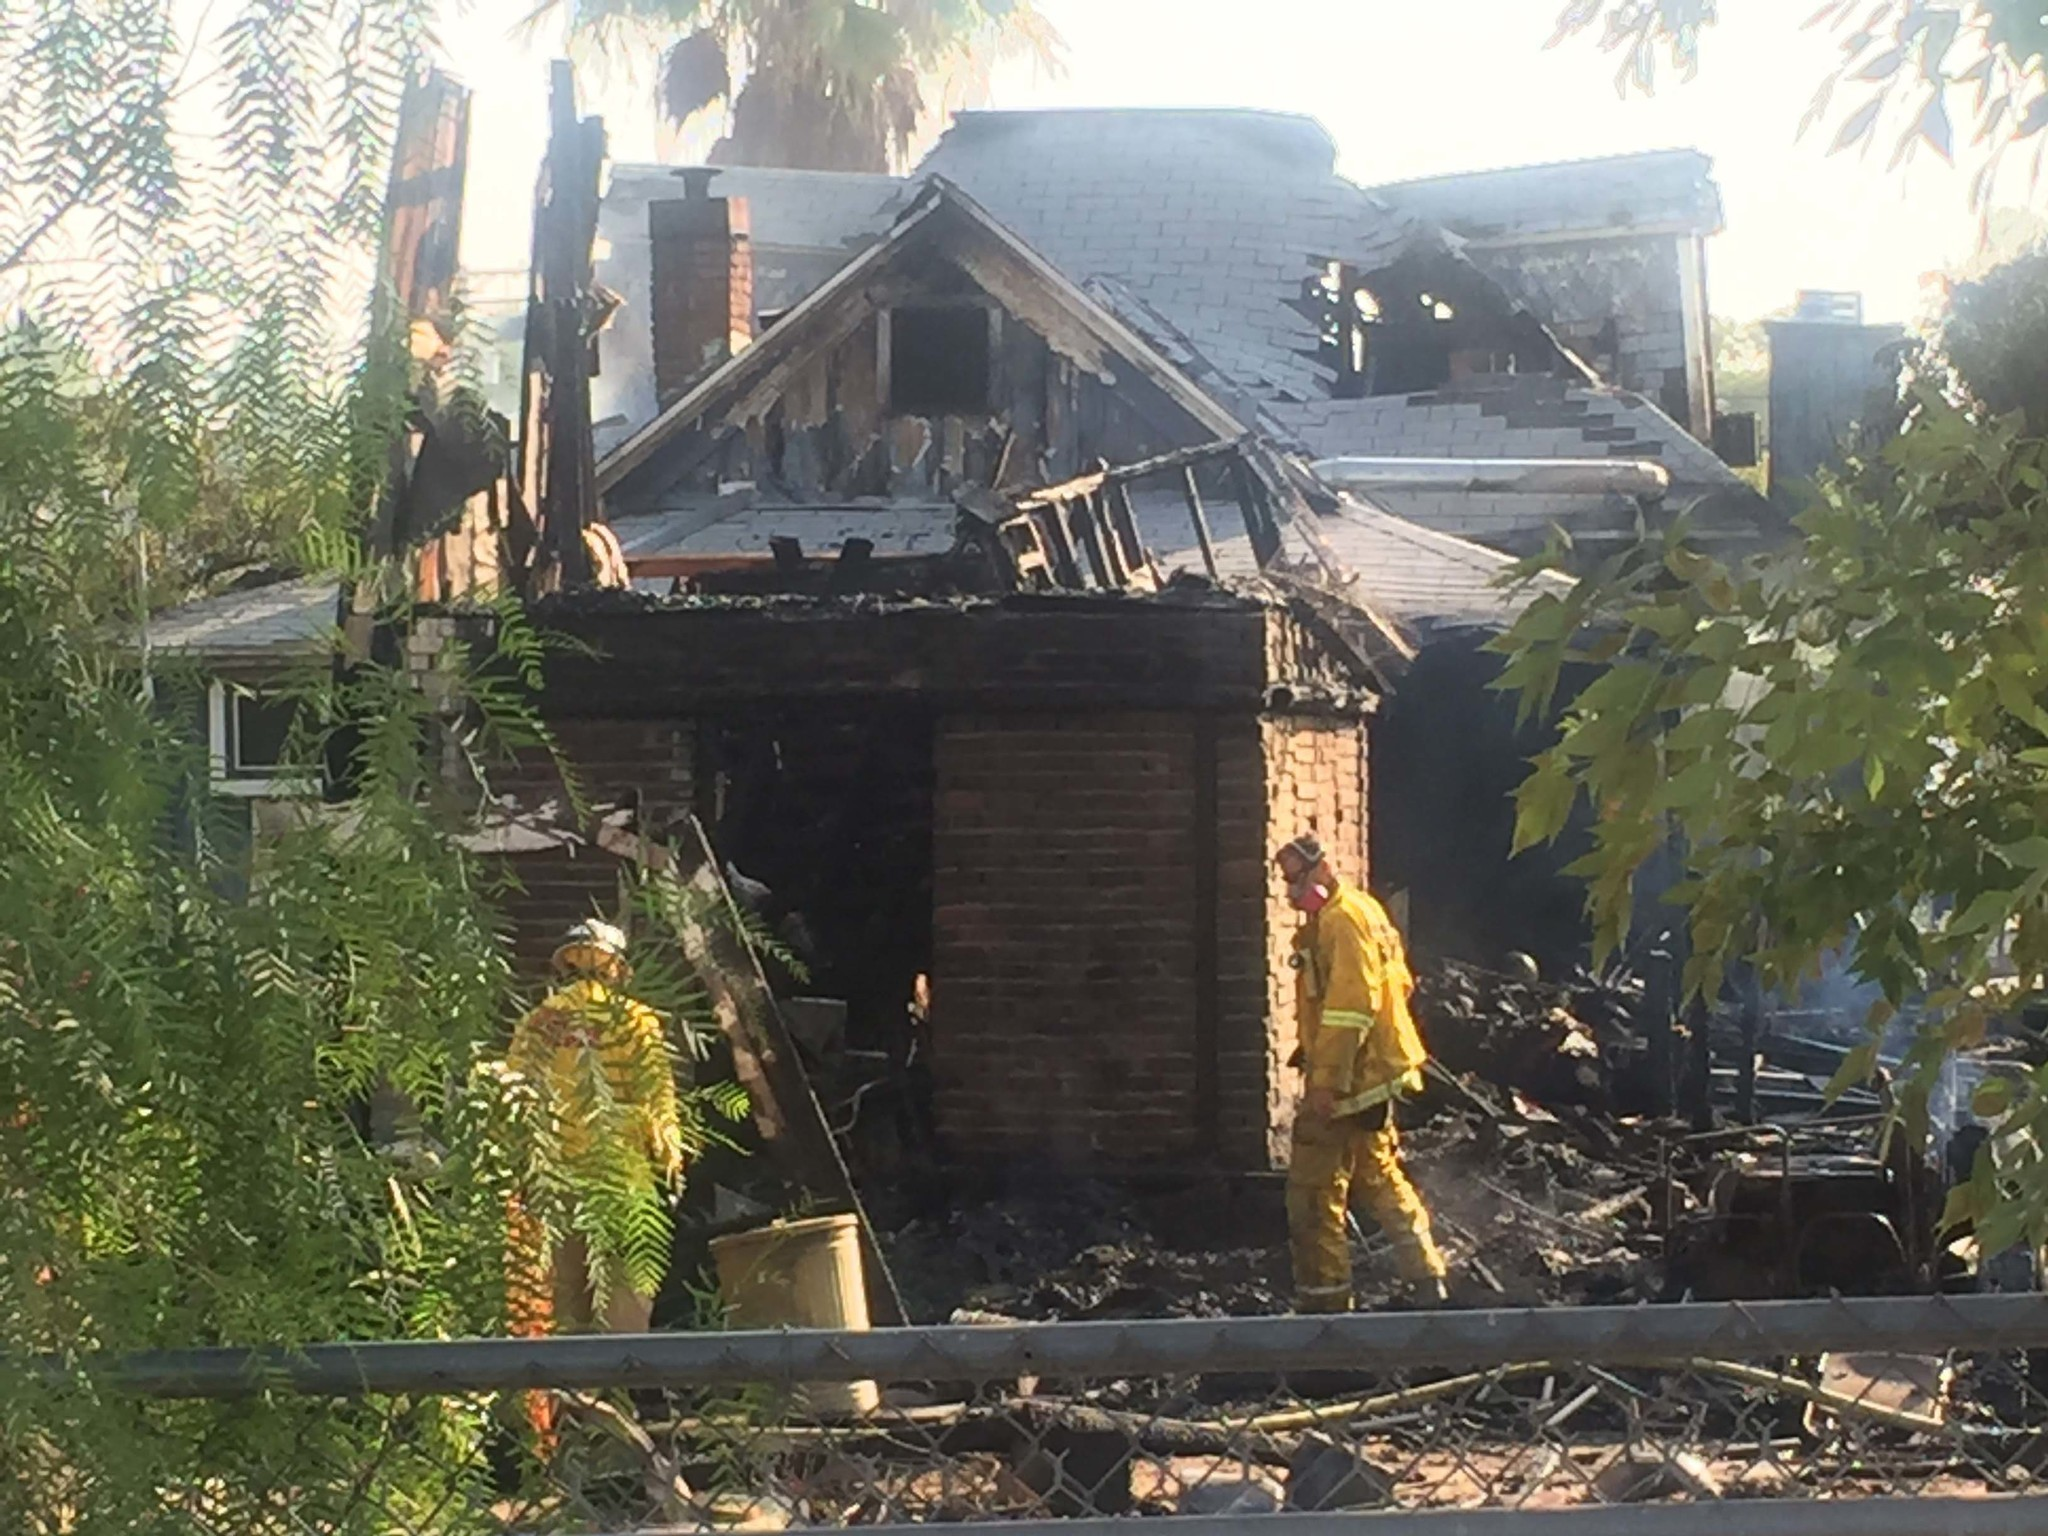 Firefighters remain at the scene of a fire that destroyed two structures in the 600 block of B Street Friday morning.